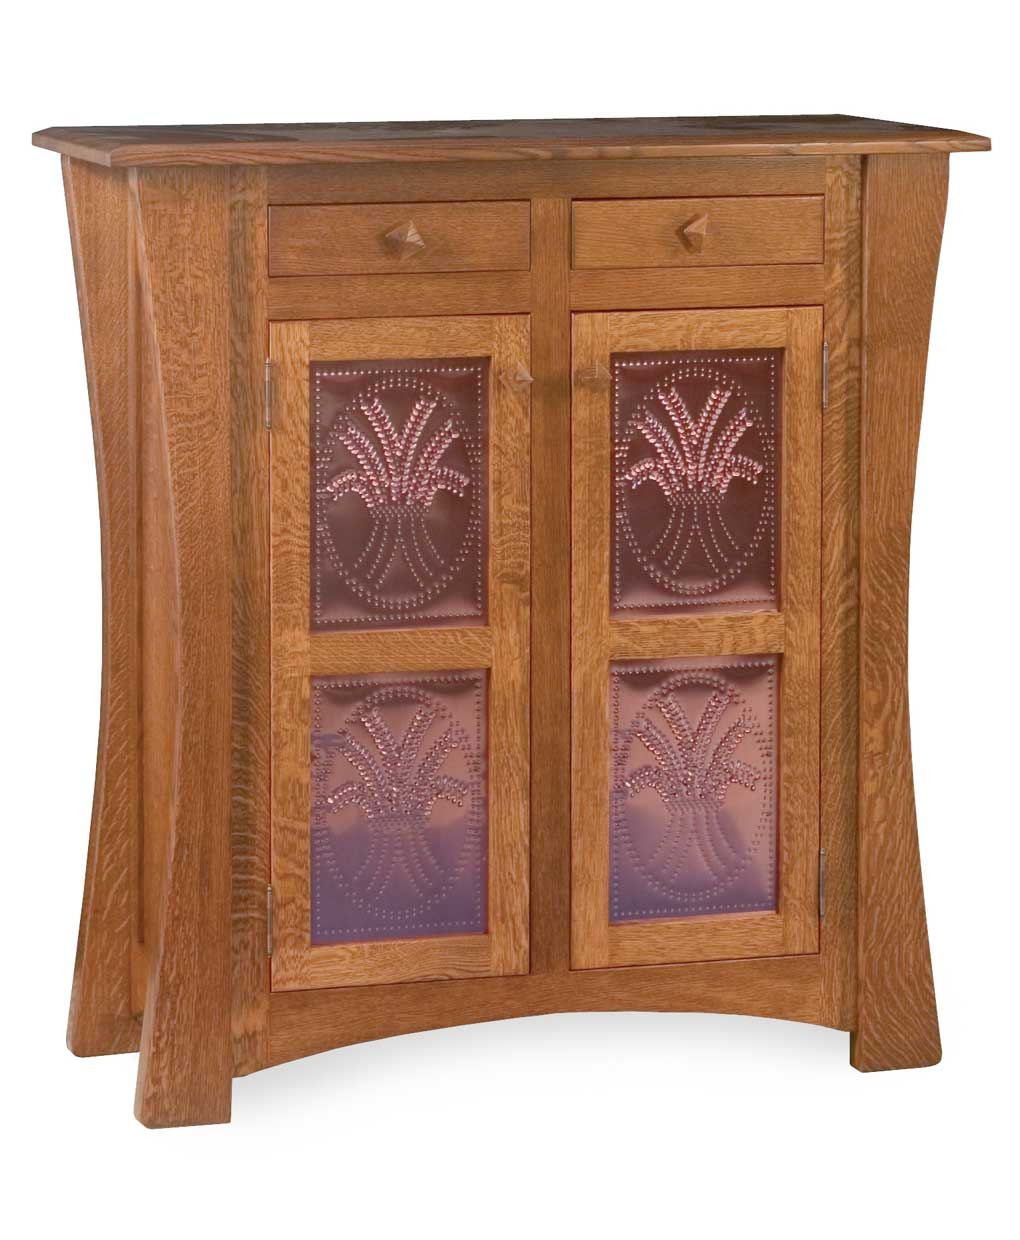 Amish Cabinet Doors Lovely Arts and Crafts Cabinet